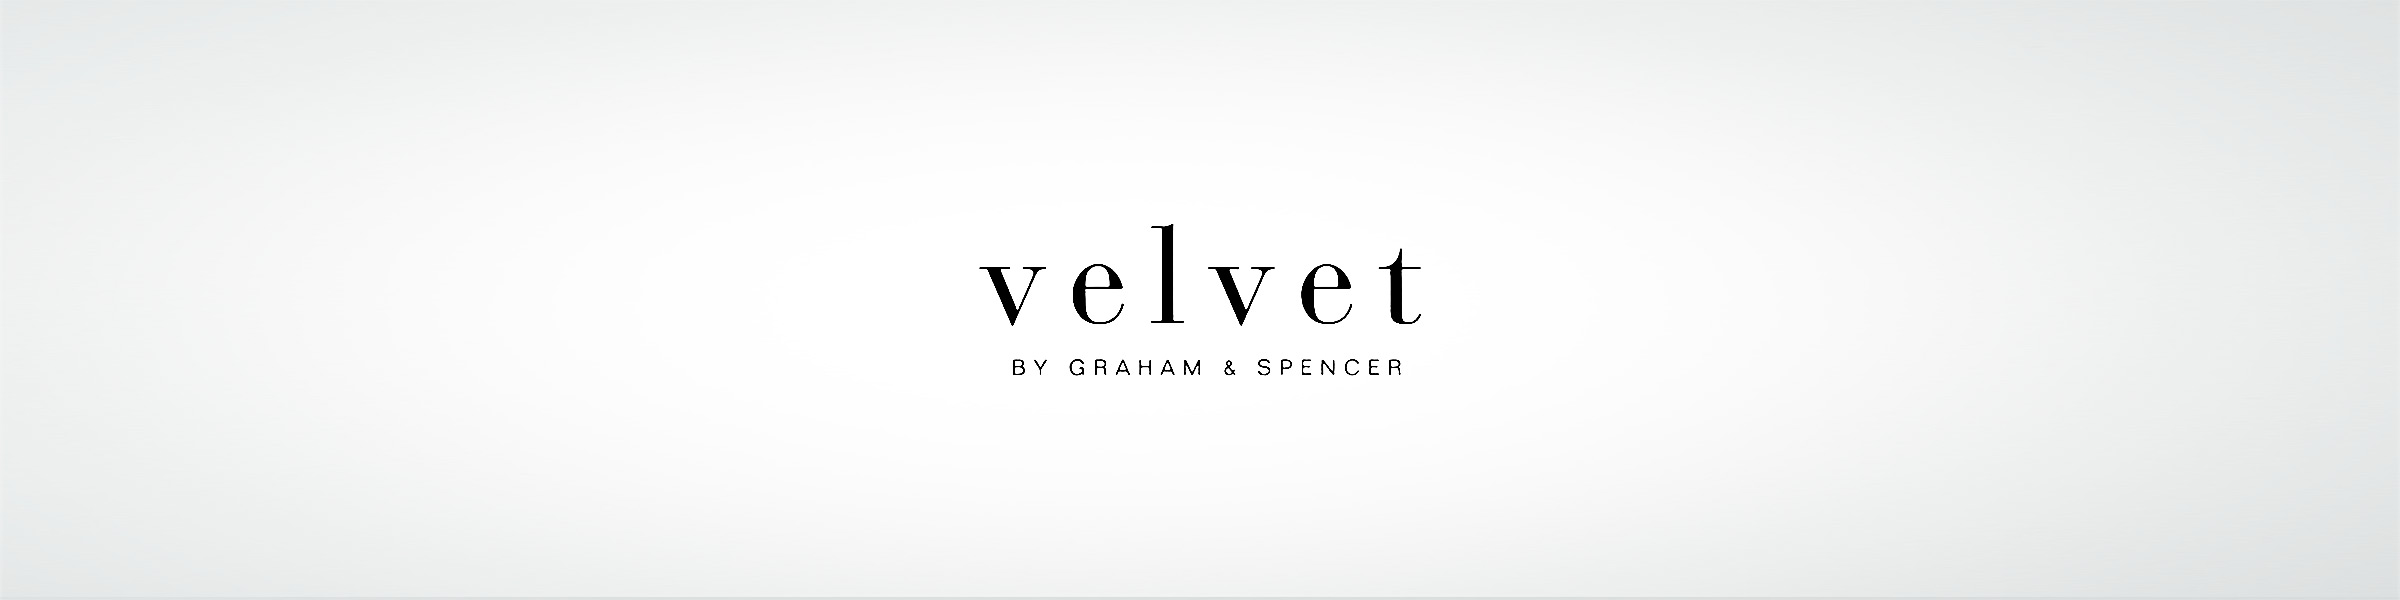 032353 VELVET BY GRAHAM SPENCER